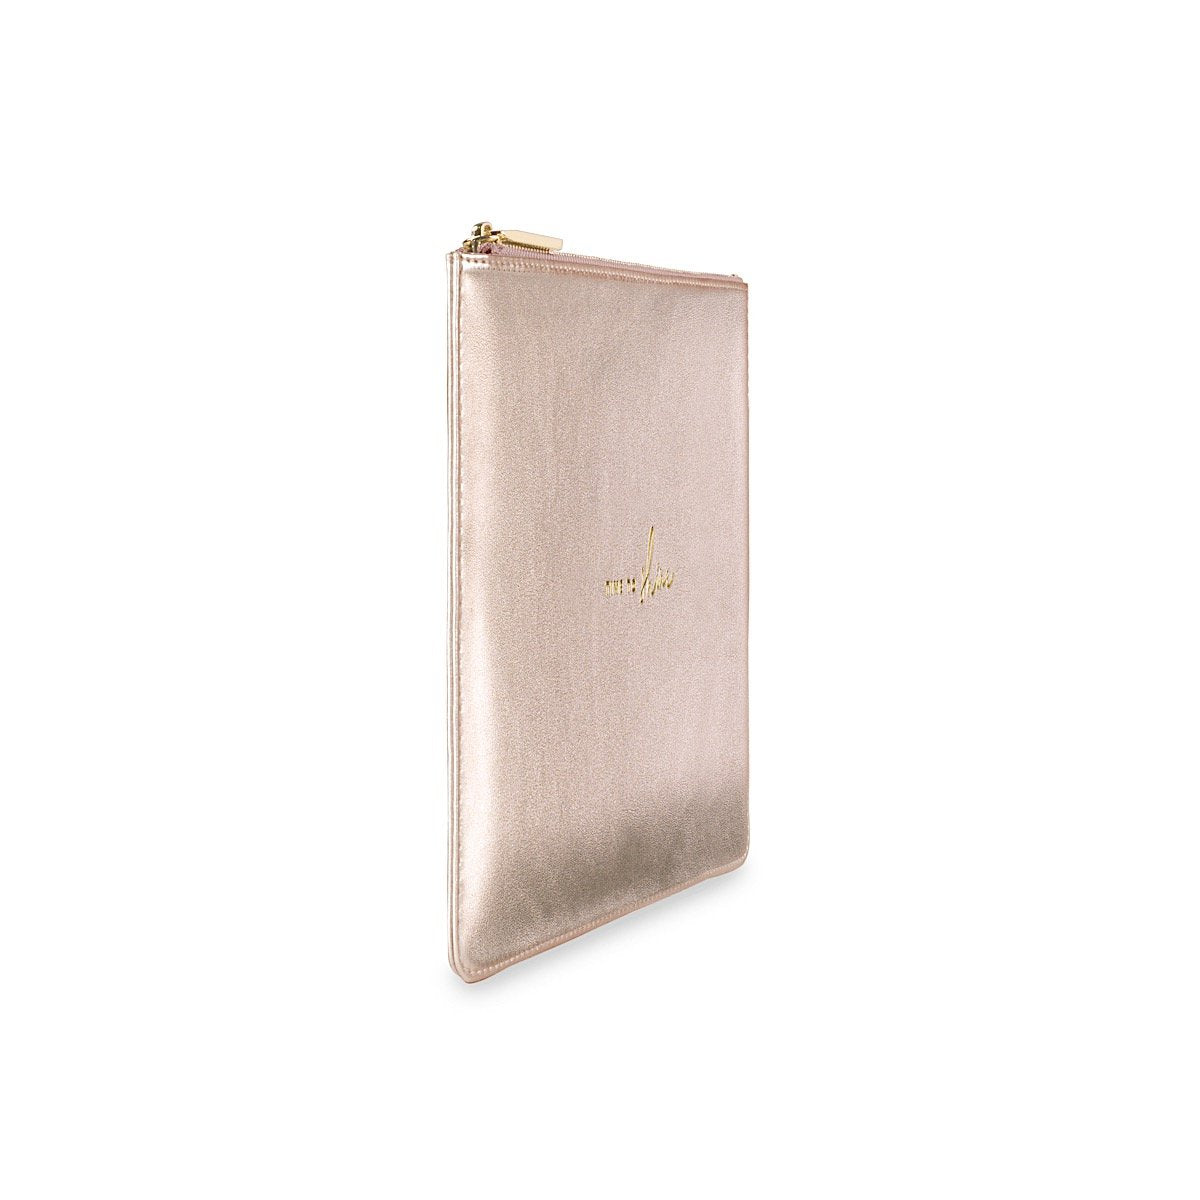 8a4a29ee21aca Katie Loxton Store: Official Katie Loxton Stockists ...